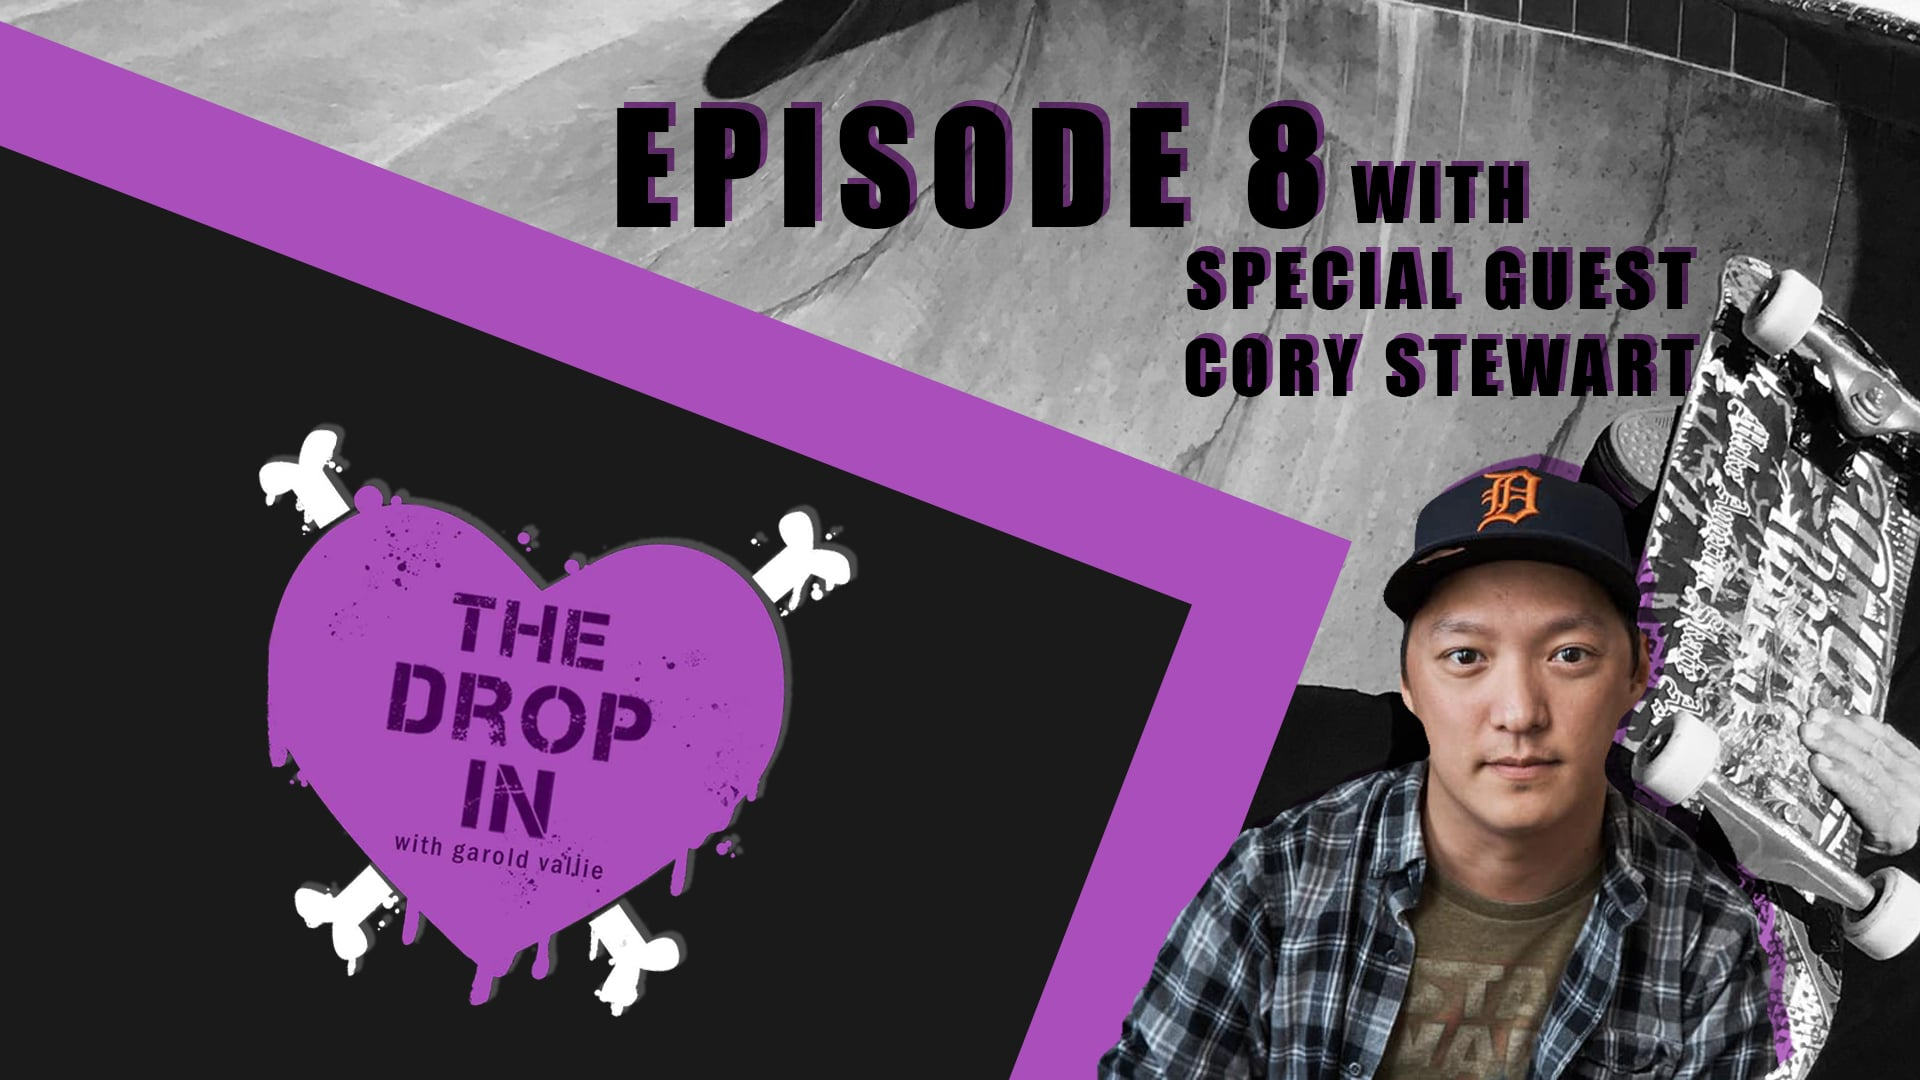 The Drop In with Garold Vallie - Episode 8